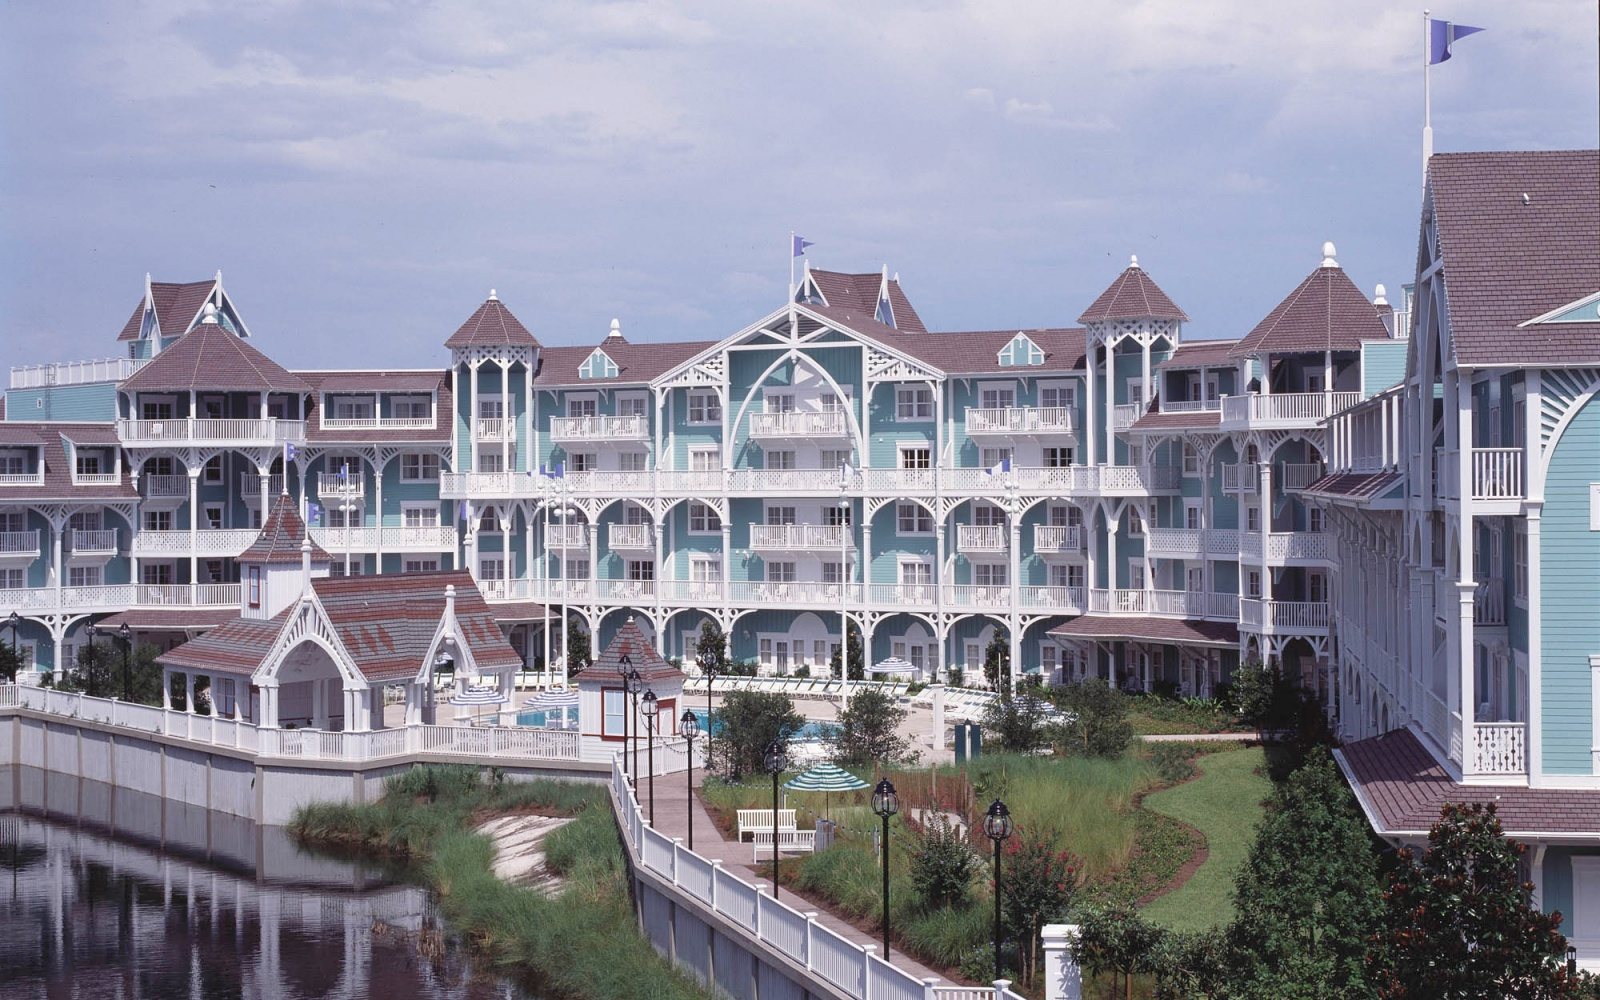 No. 8 Disney's Beach Club Resort, Lake Buena Vista, FL